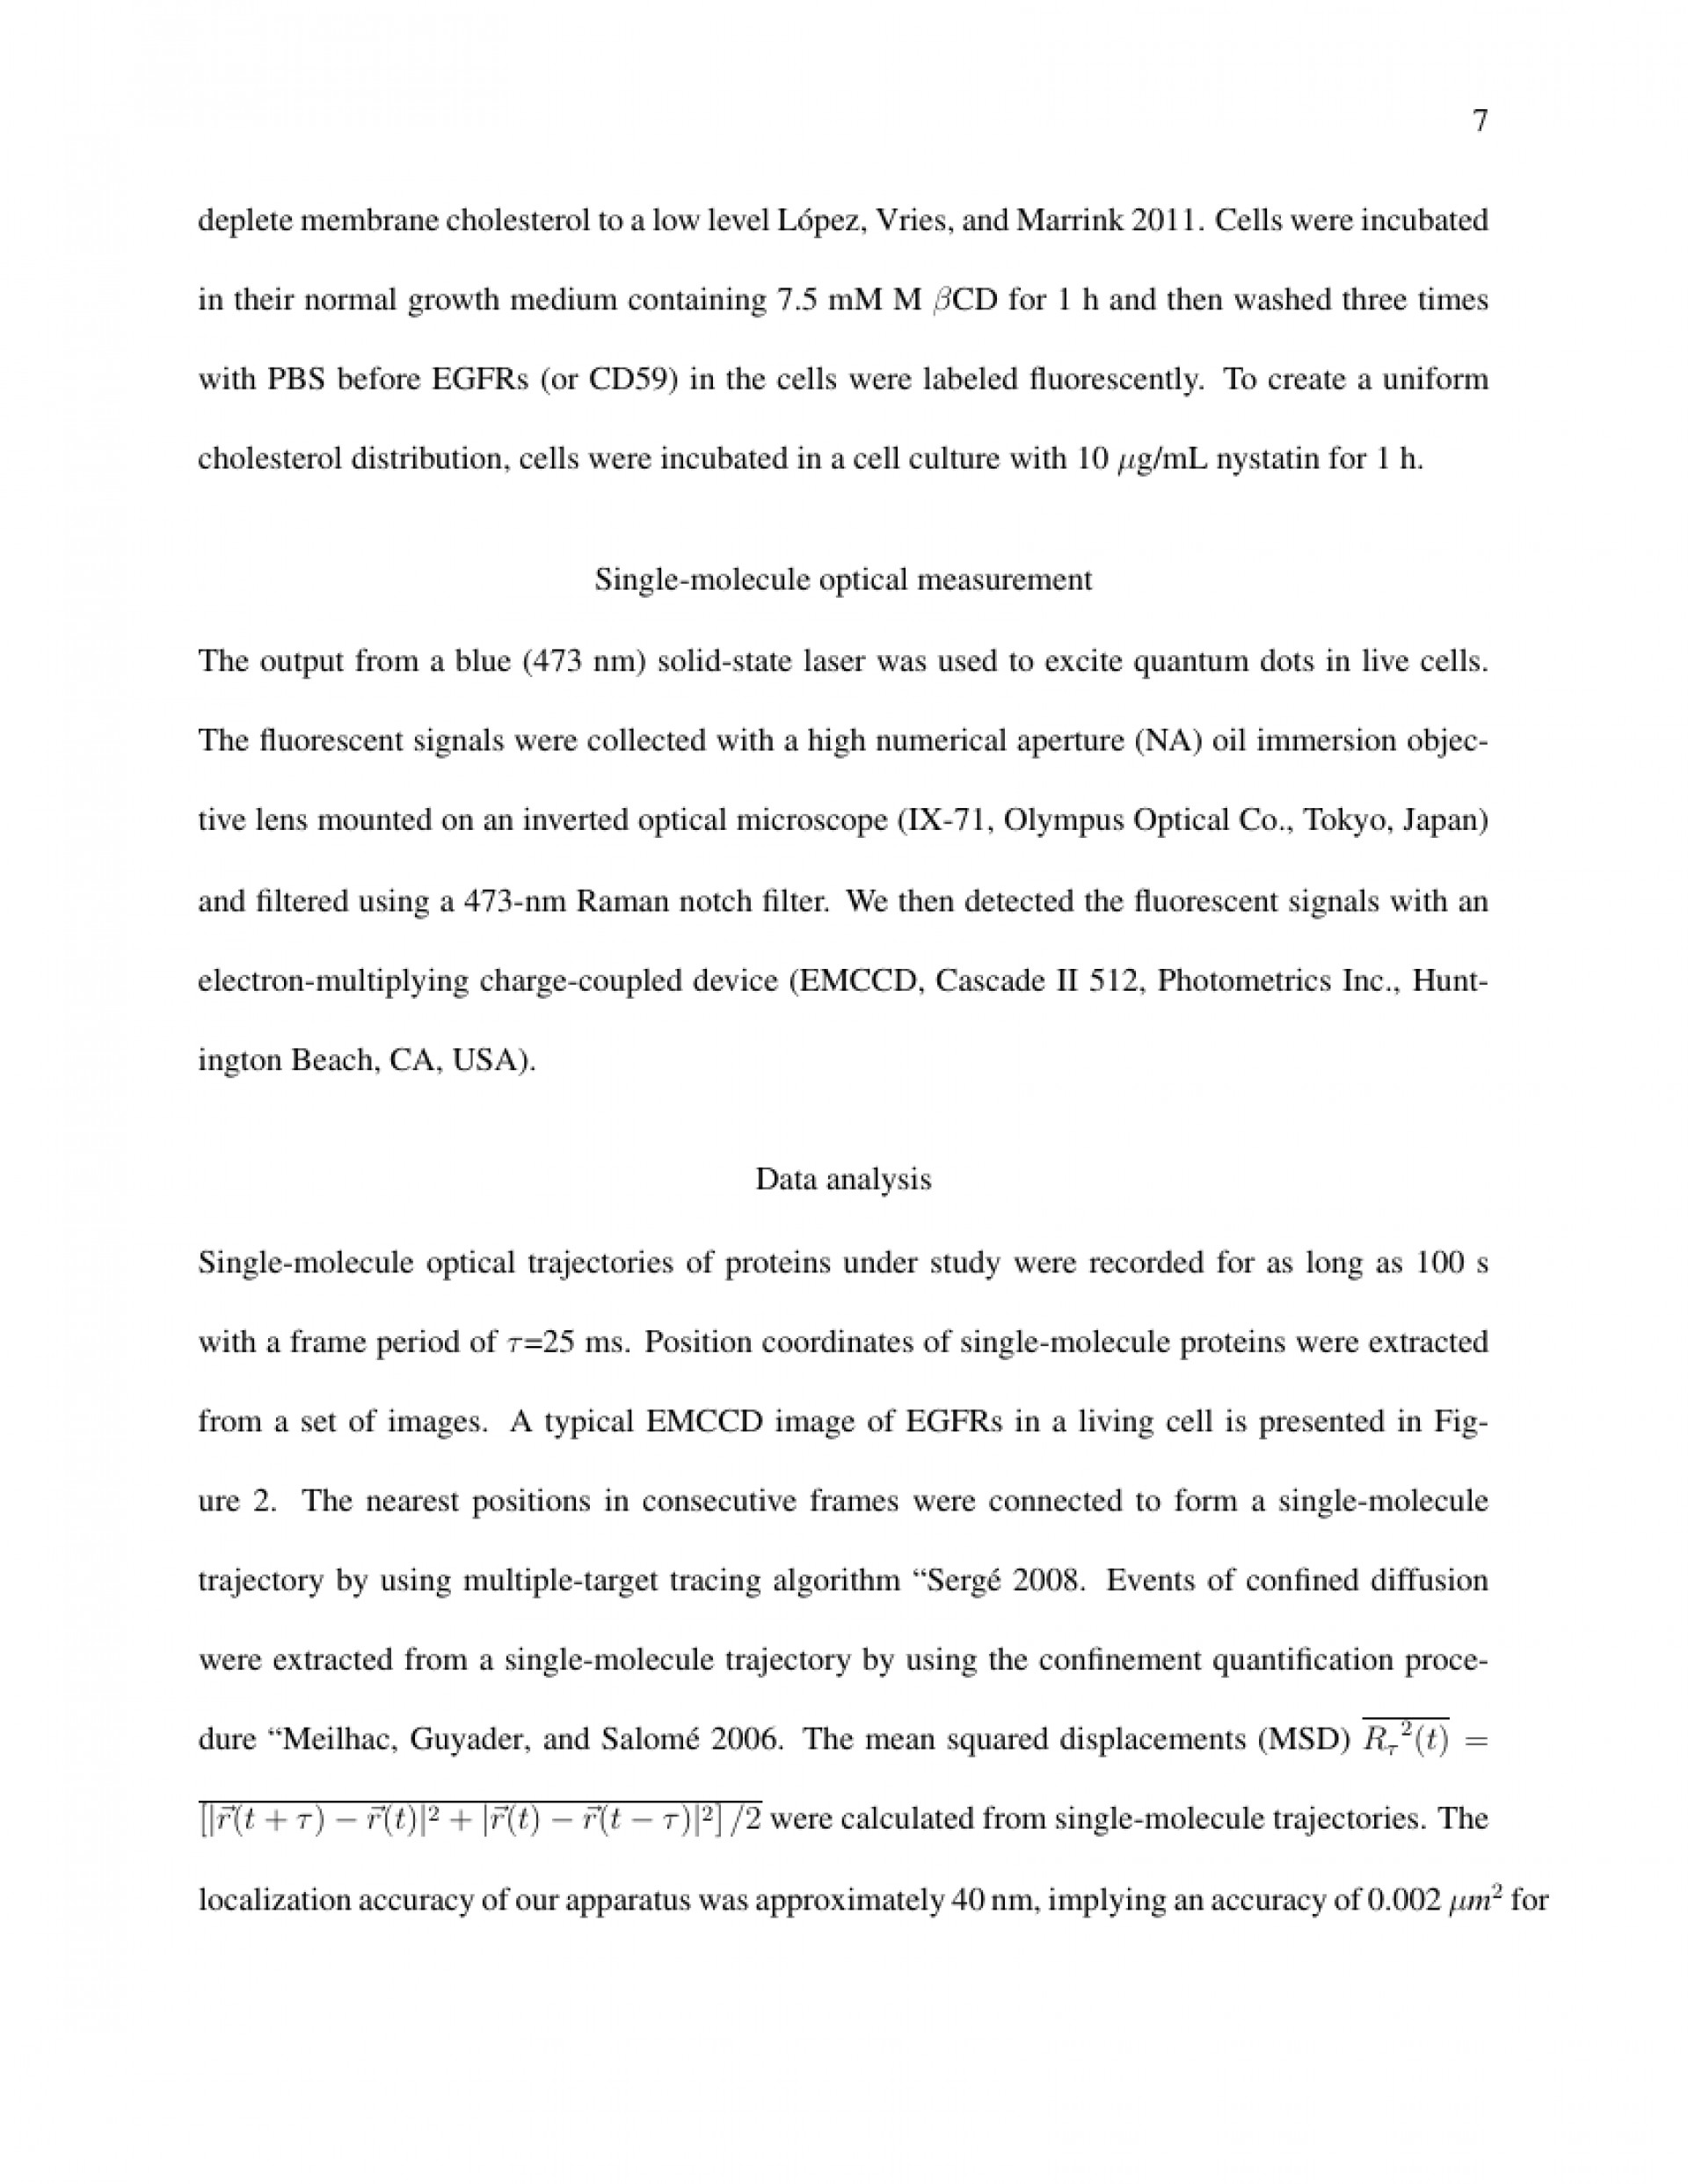 003 Article Researchs Format Awesome Research Papers Imrad Pdf Mla 1920